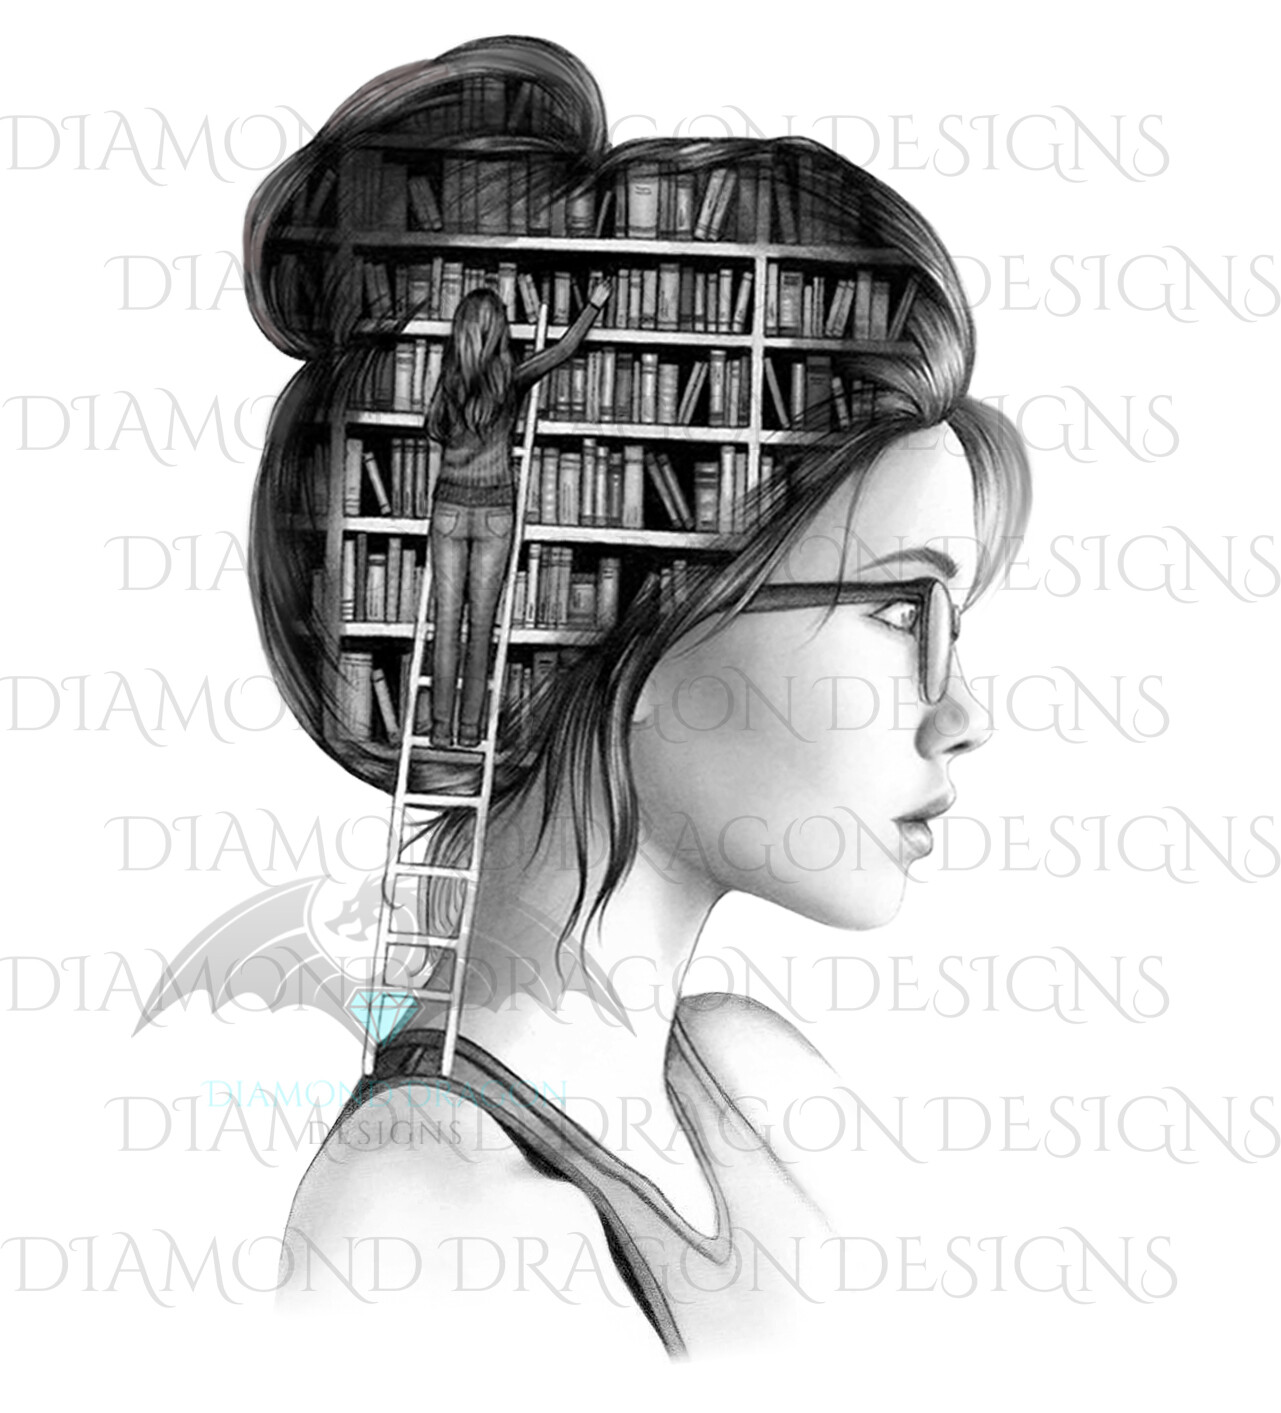 Books - Lady Library, Book Girl, Book Lover, Black and White, Digital Image